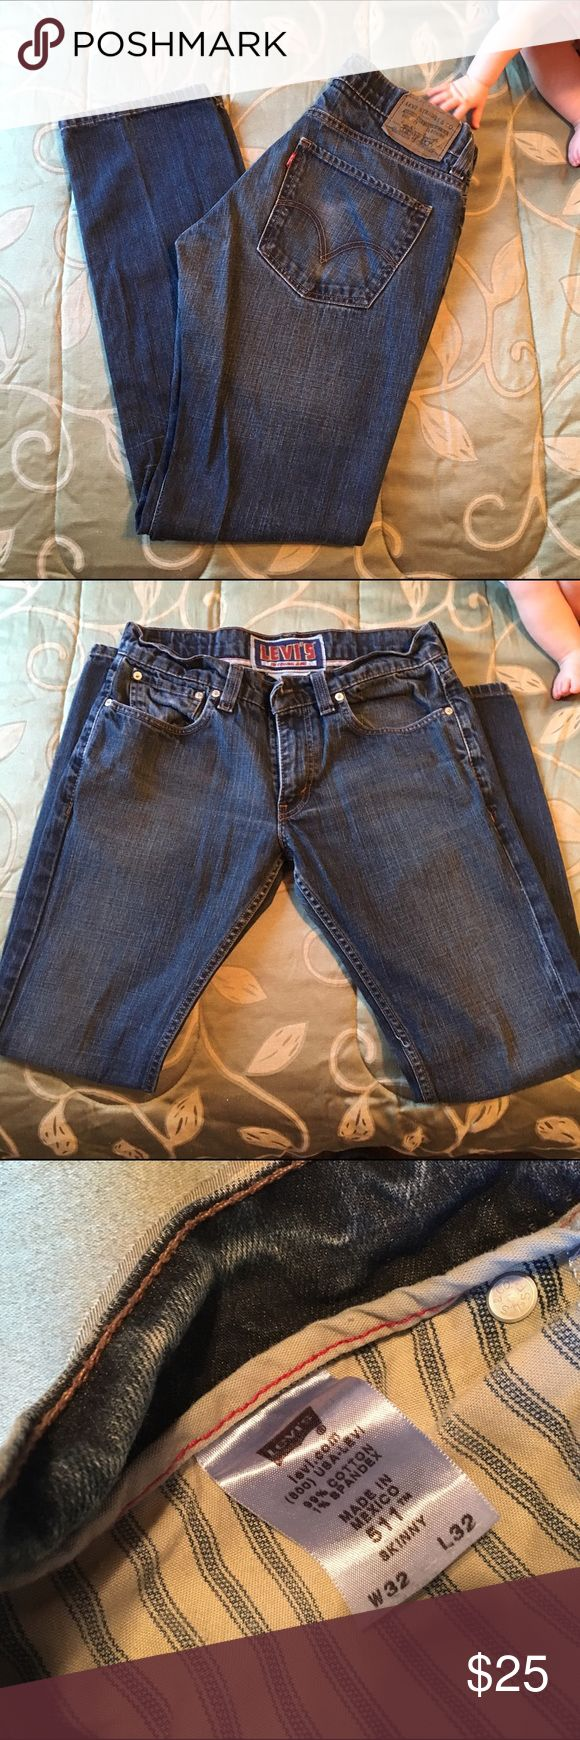 Levi's 511 Skinny Jeans 👖 Men's 511 Skinny Jeans Men's Levi's in great shape. No holes or stains. 32 x 32 Levi's Jeans Skinny